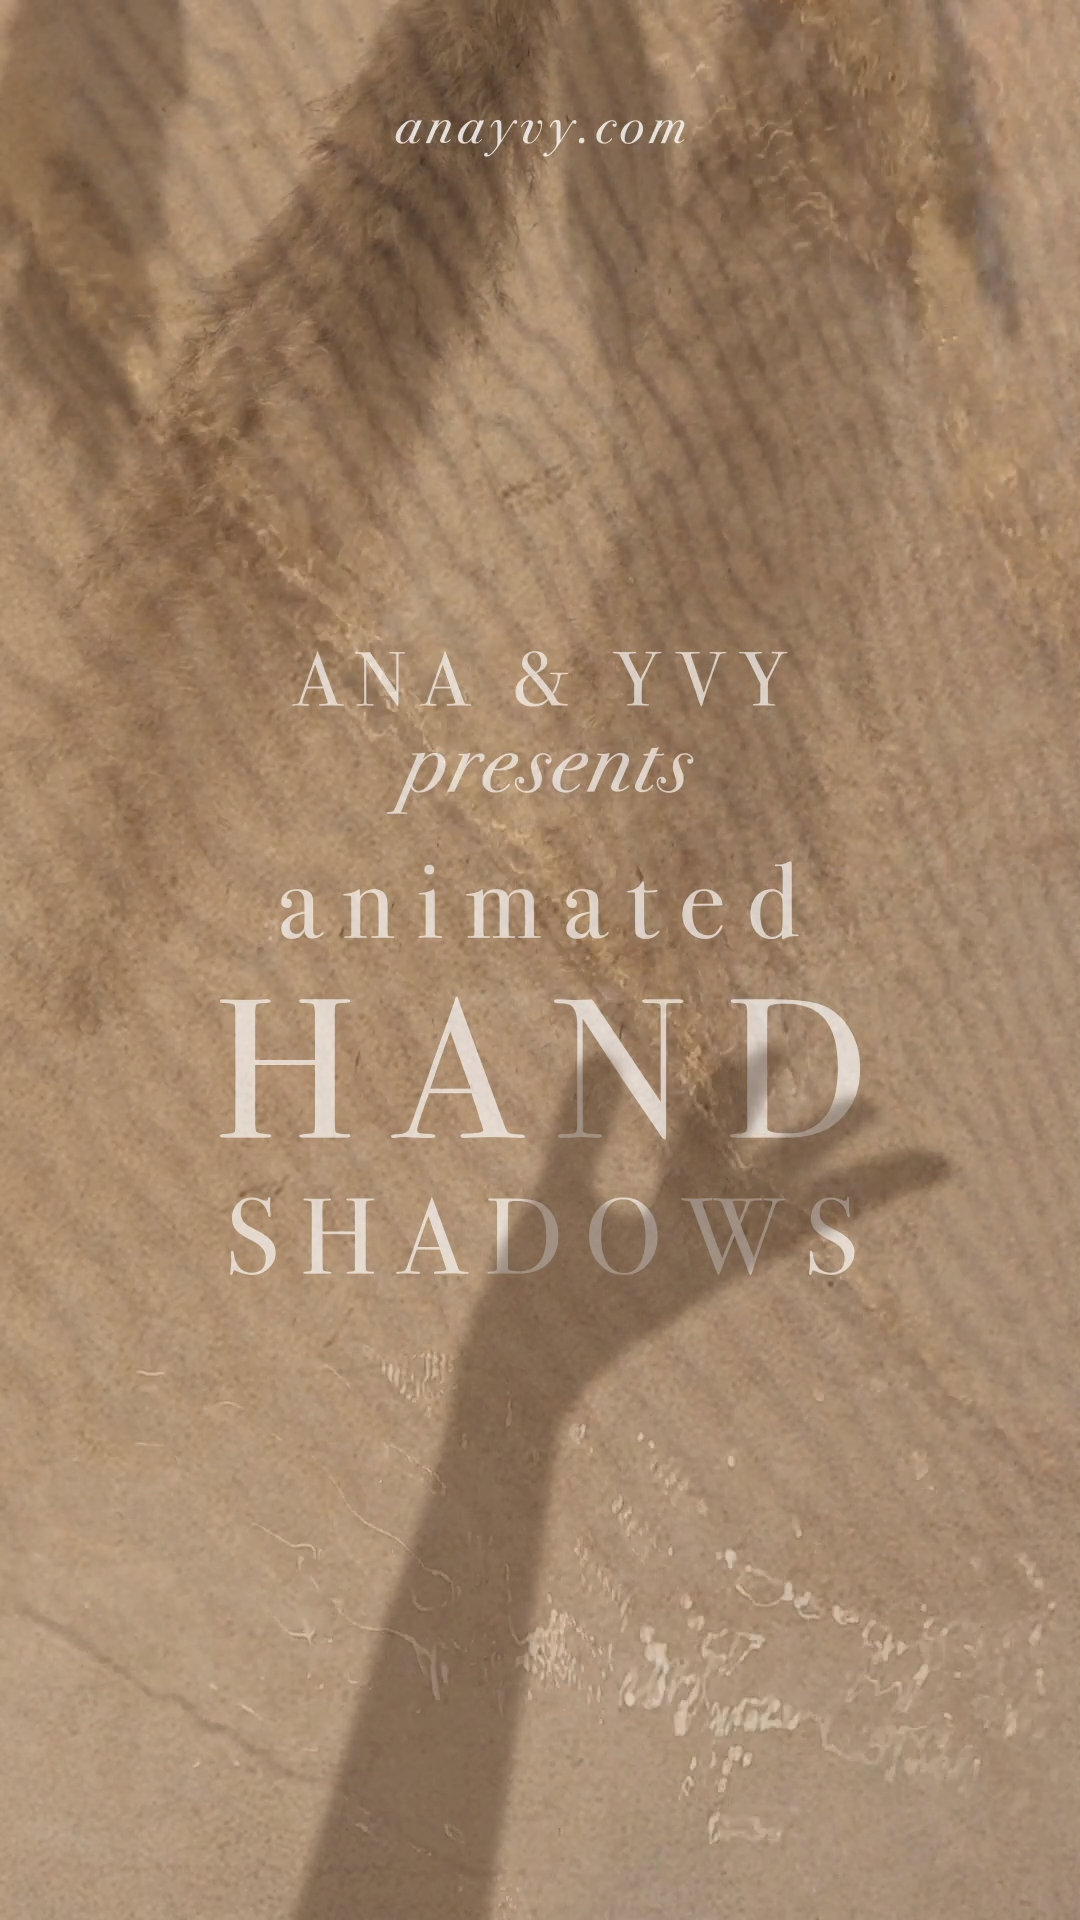 Realistic and natural moving shadows of hands for your next audiovisual presentation. Create amazing looking mockup scenes directly inside photoshop or premiere. Realistic movement overlays create a natural sunlight & shadow look.